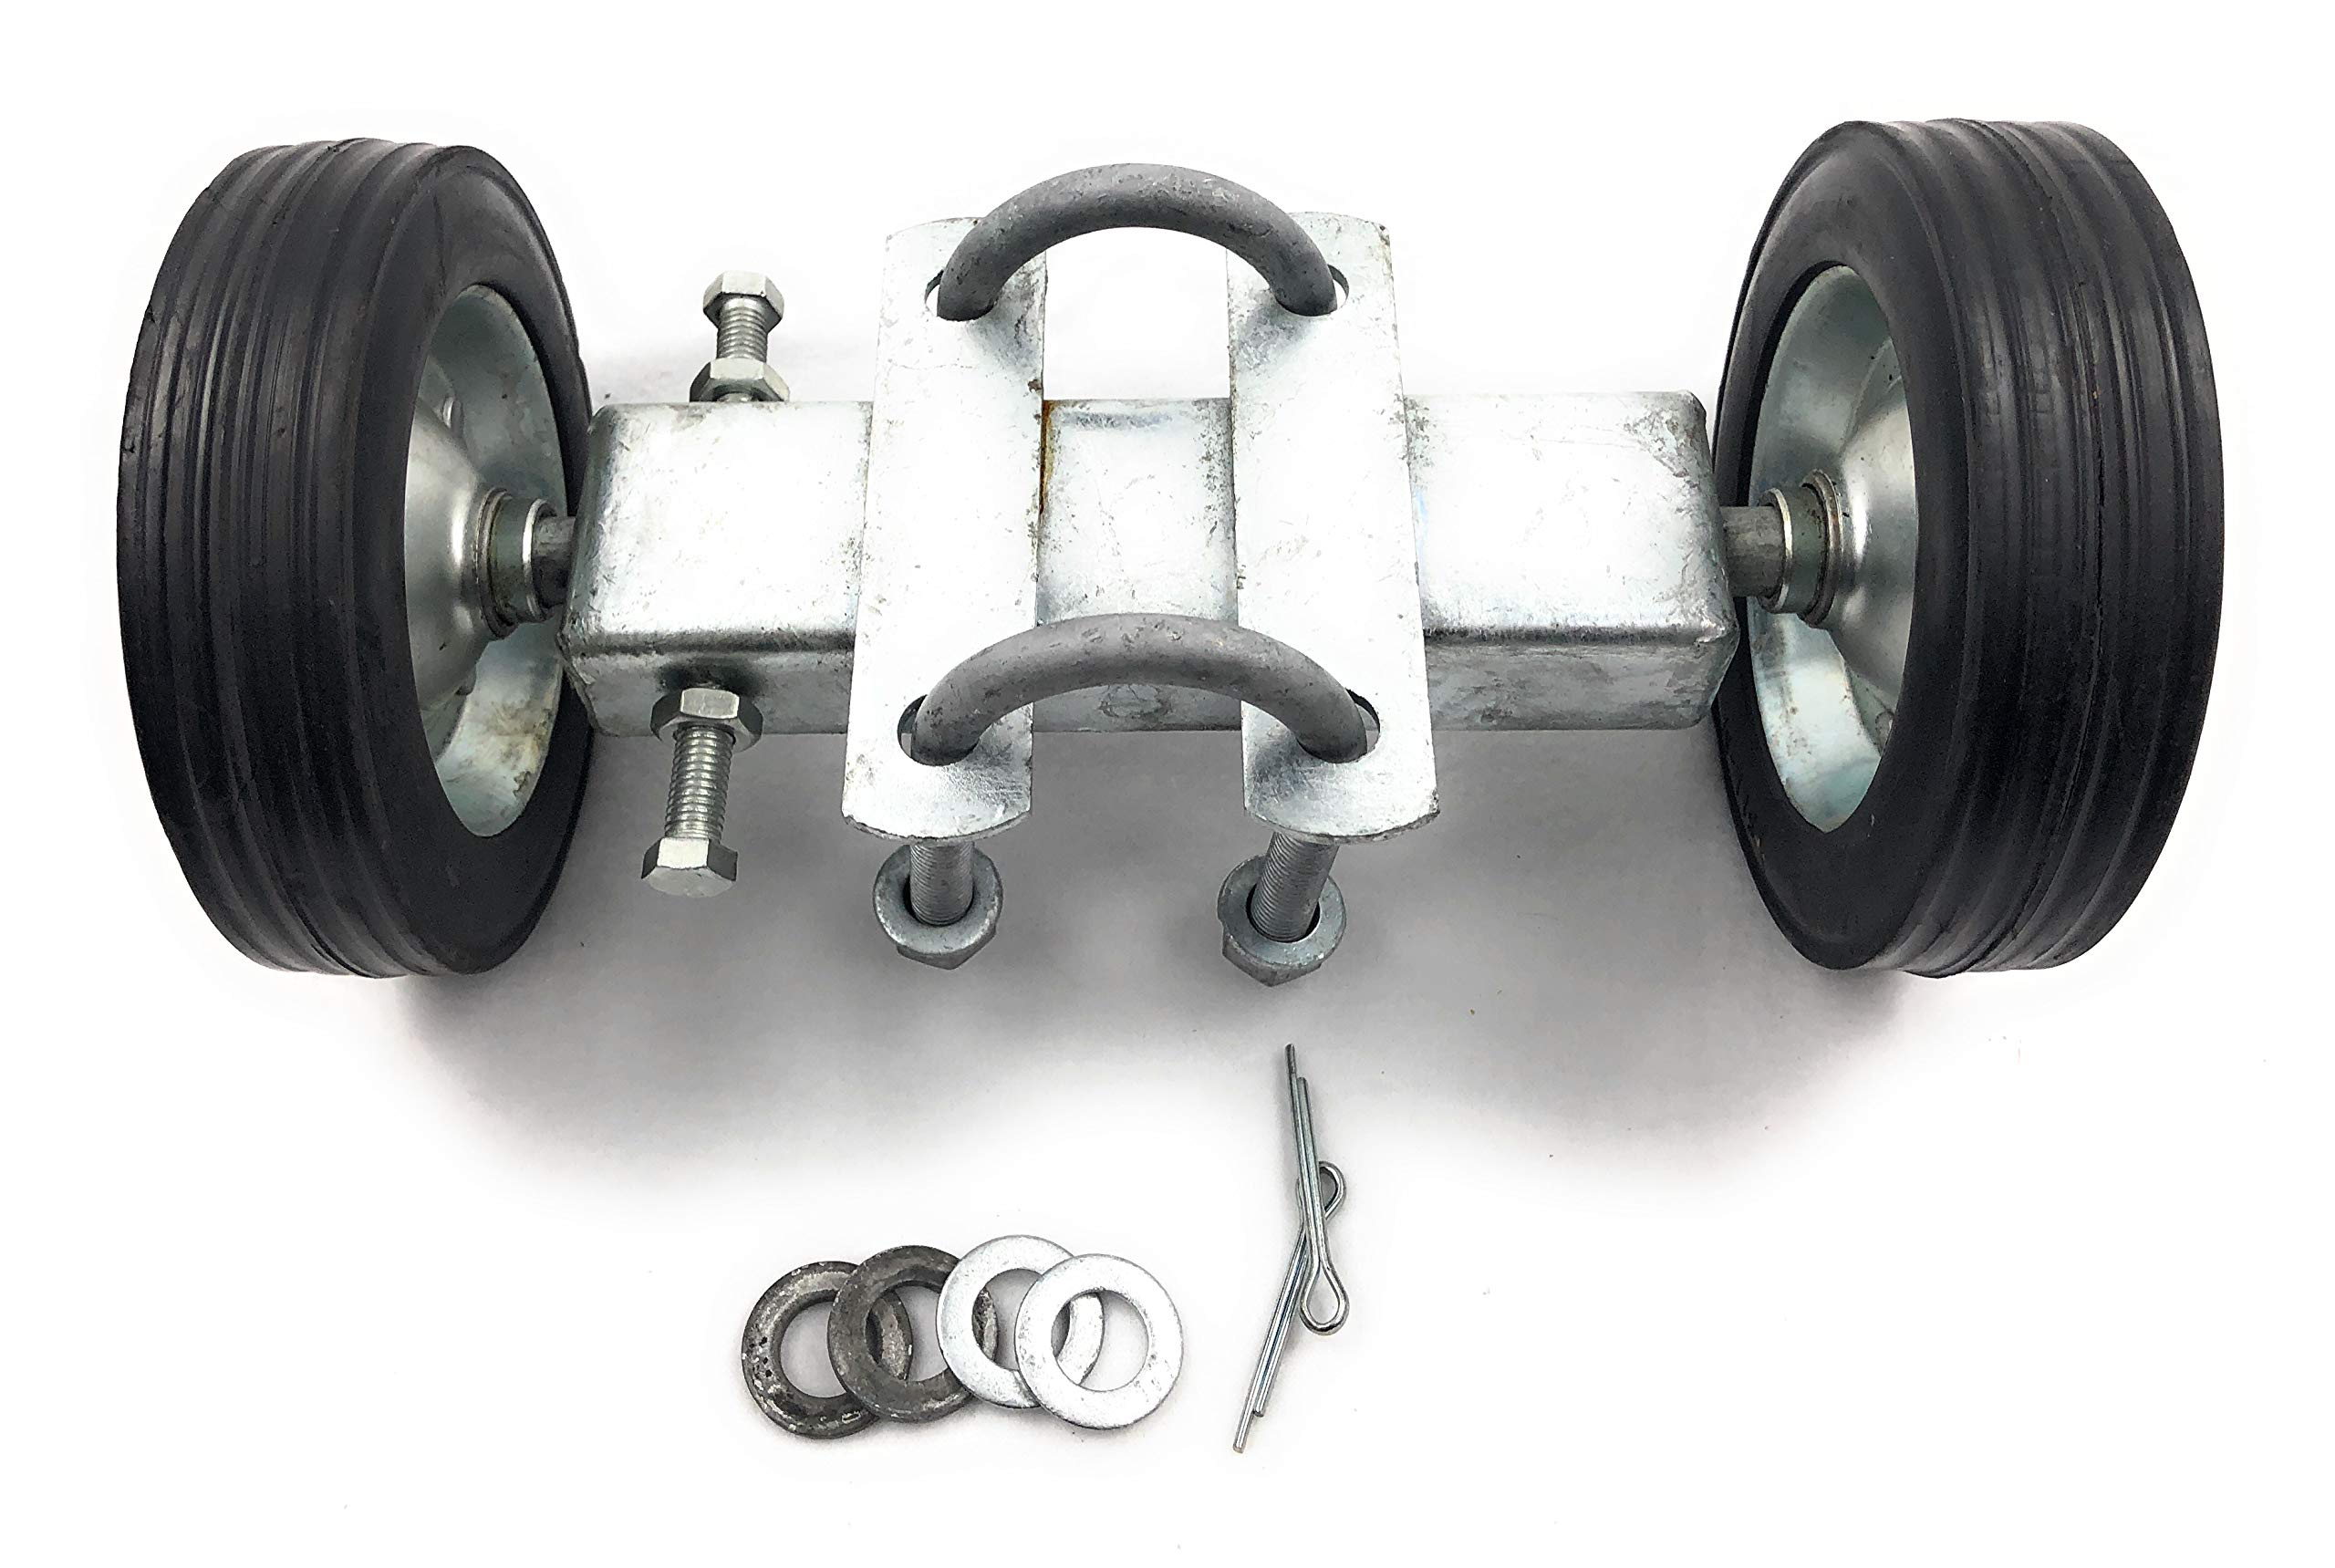 6'' ROLLING GATE CARRIER WHEELS: for chain link fence rolling gates - rut runner by FenceSmart4U